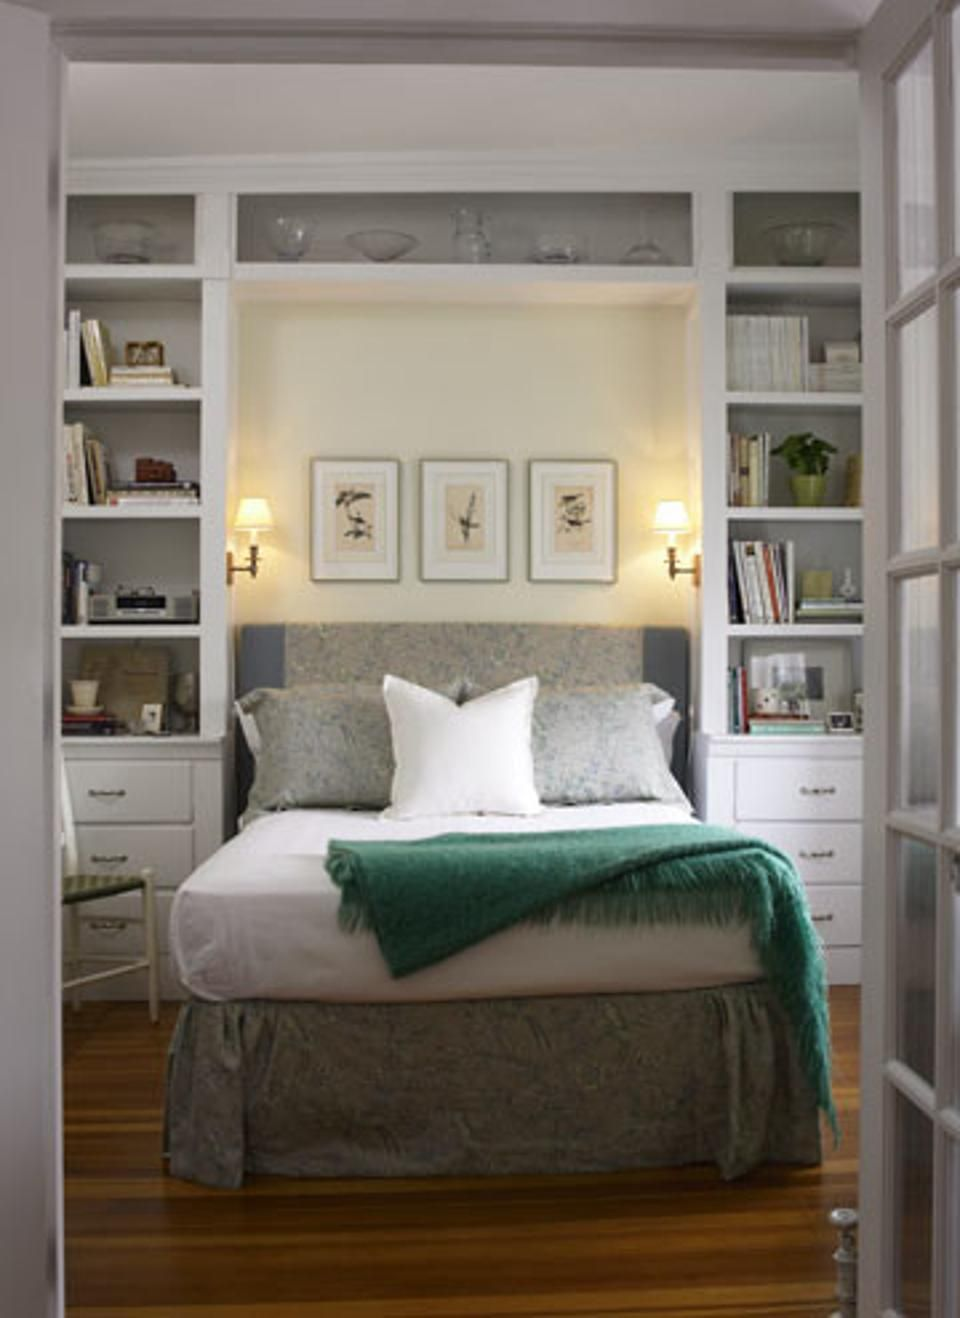 10 tips to make a small bedroom look great compact for How to make more space in your bedroom